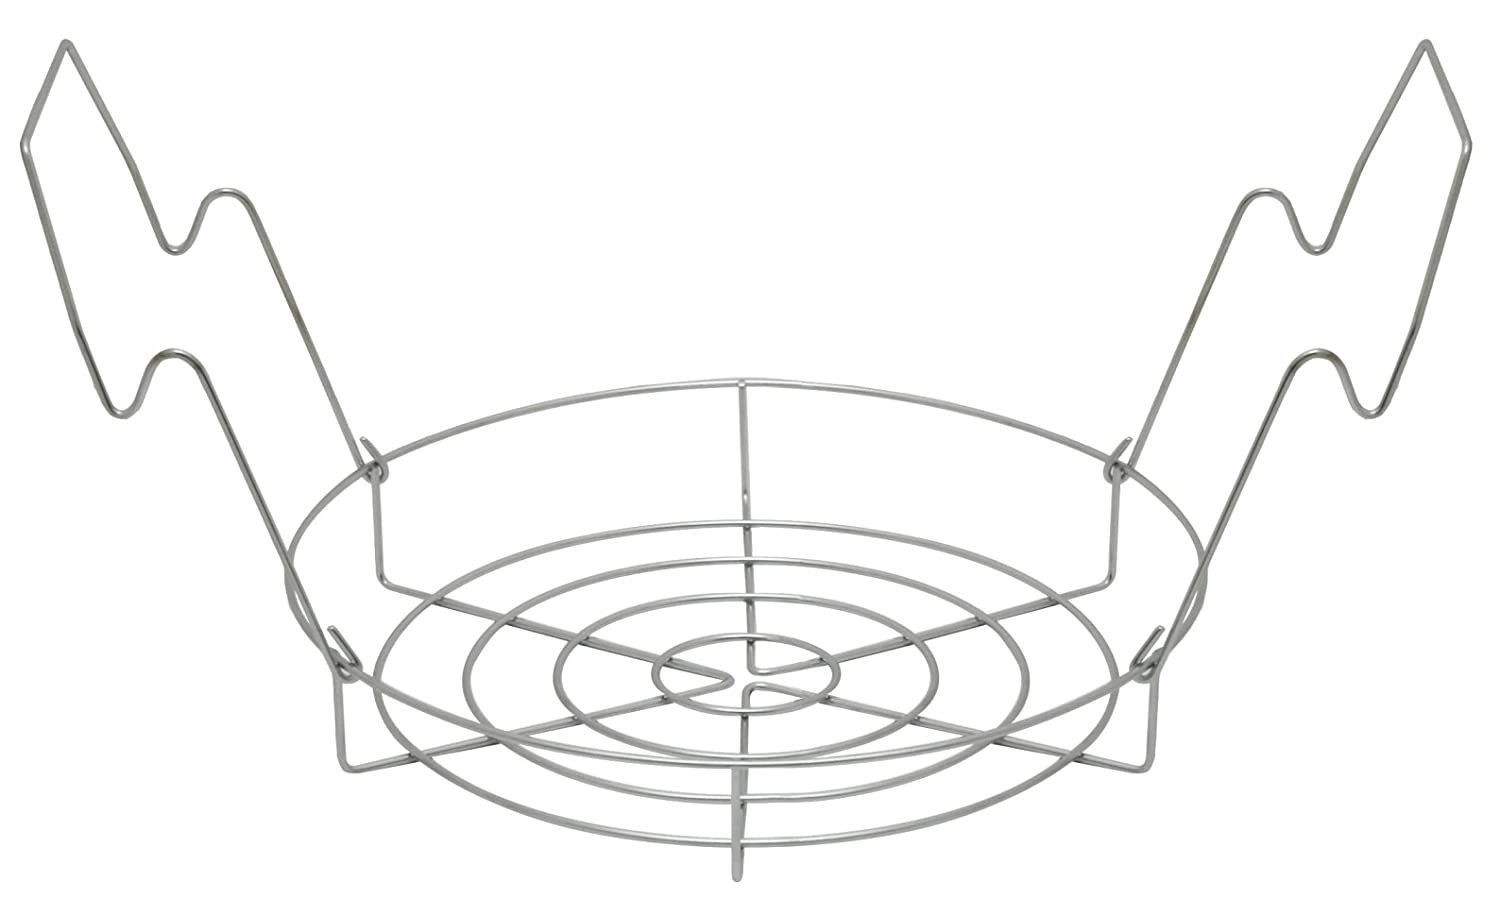 Stainless Steel Canning Rack, Flat, by VICTORIO VKP1056